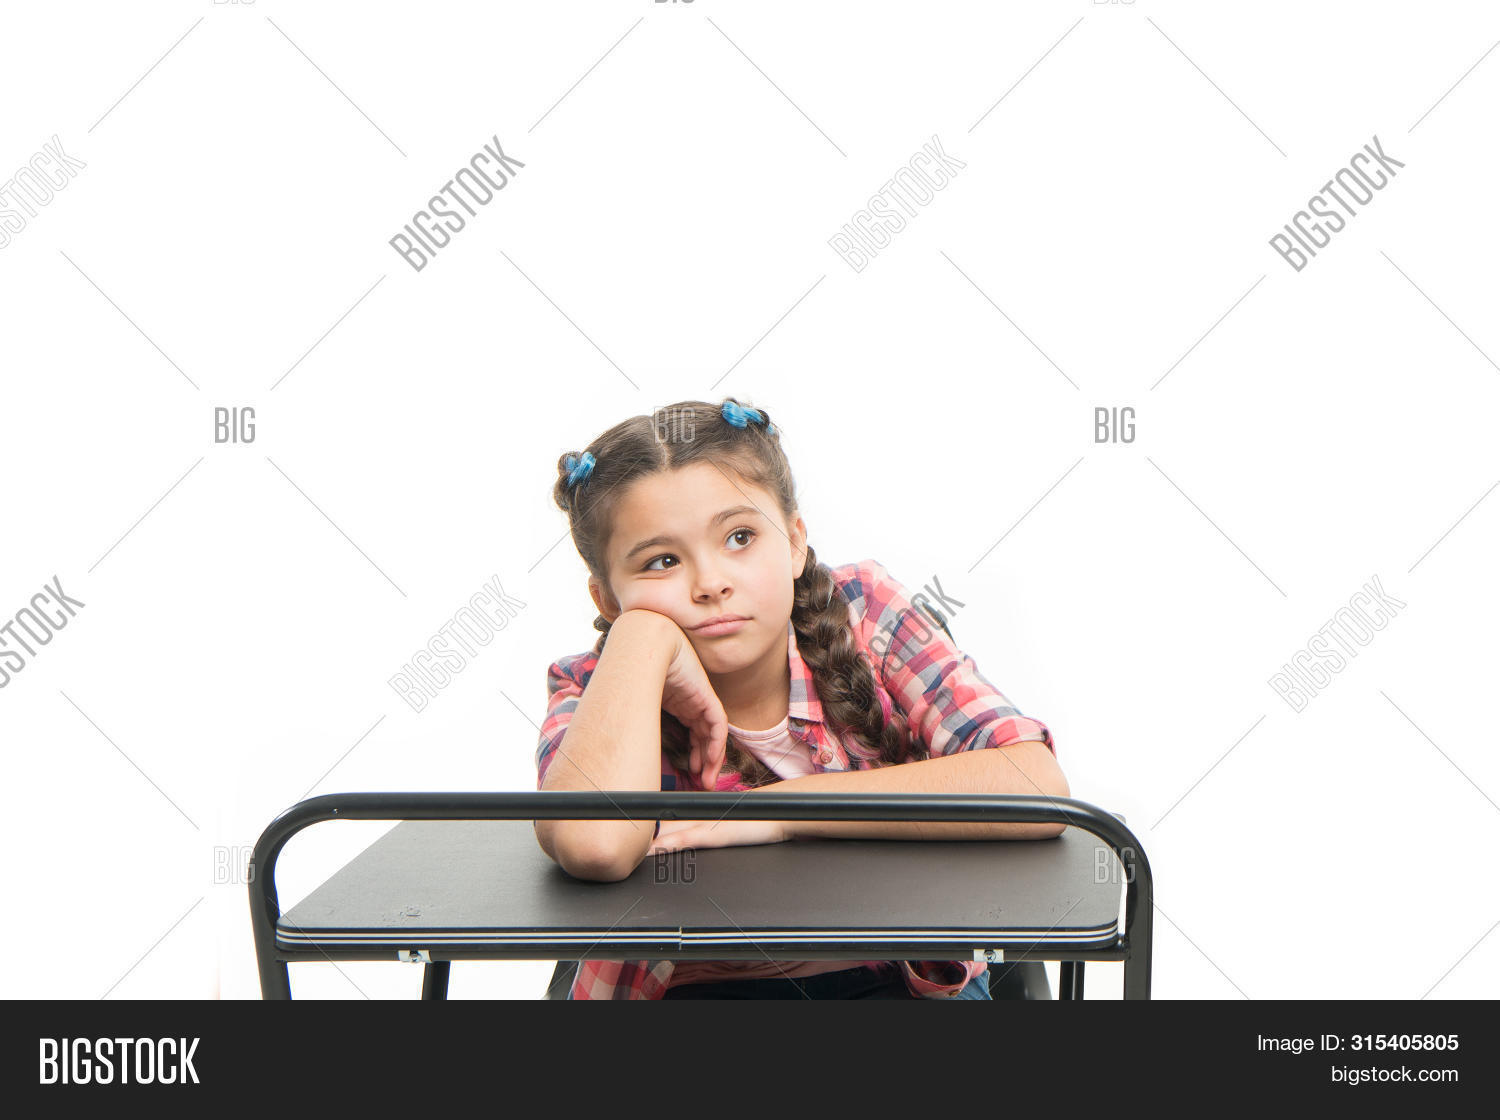 Boring lesson. Girl bored pupil sit at desk. Issues of formal education. Back to school concept. Kid cute tired of boring studying. Boring educational program. Need some rest and entertainment.